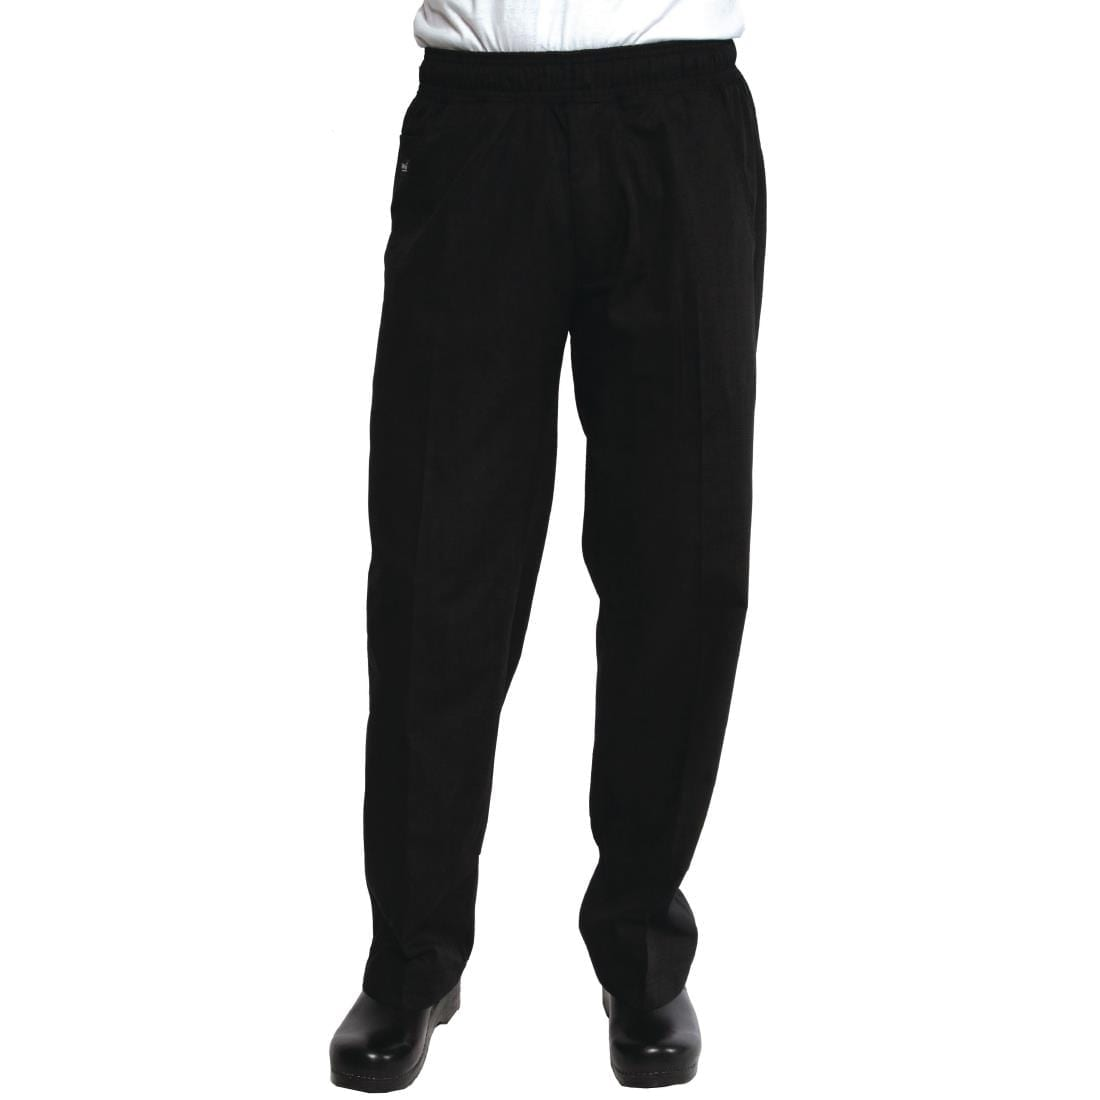 Chef Works Unisex Better Built Baggy Chefs Trousers Black 4XL